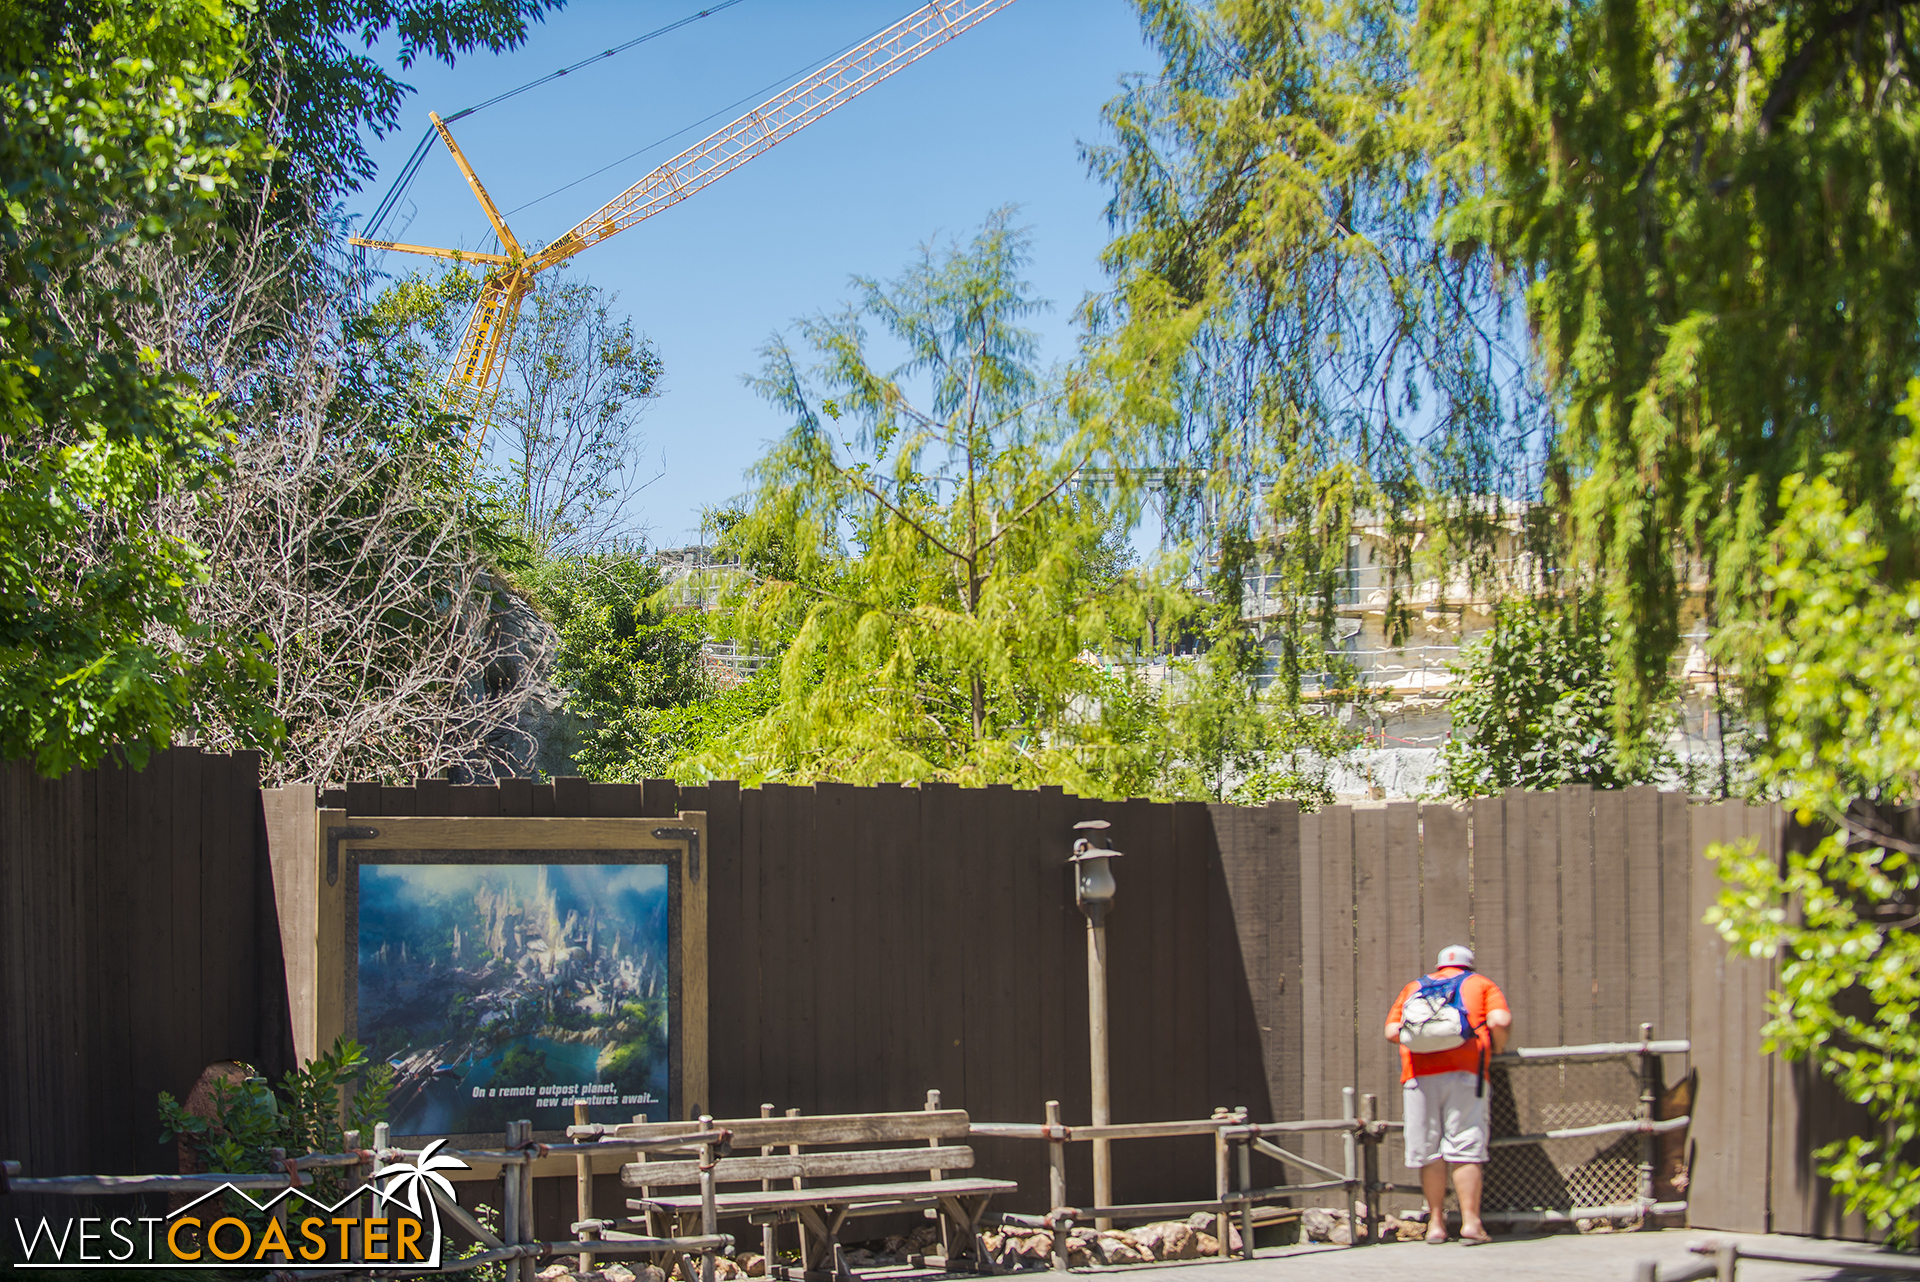 The Disneyland Railroad will be chugging by this area too.